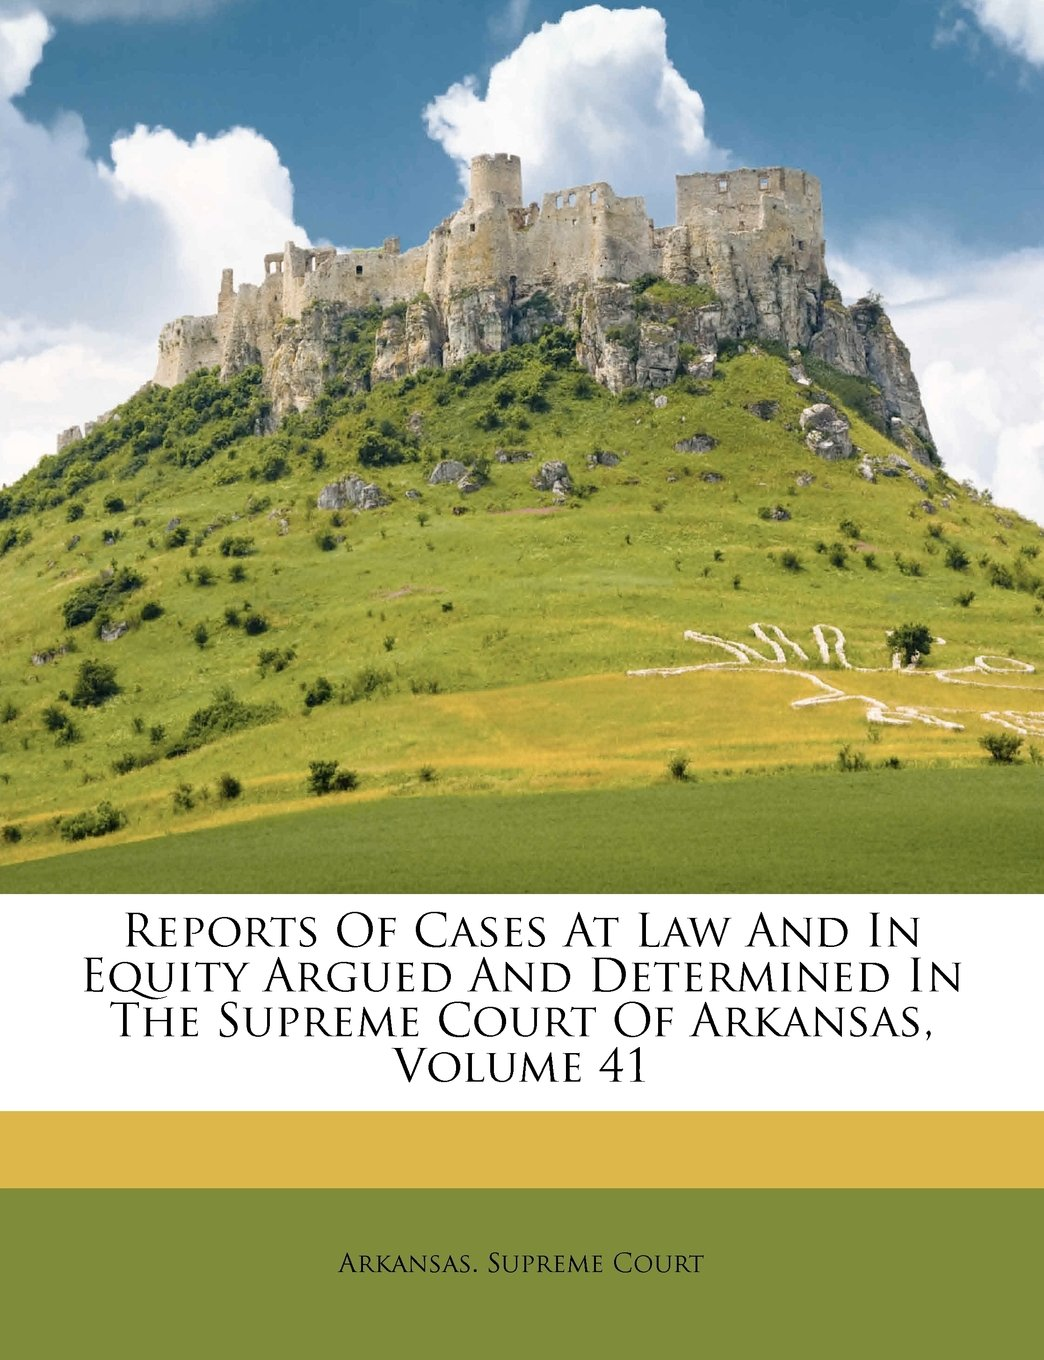 Reports Of Cases At Law And In Equity Argued And Determined In The Supreme Court Of Arkansas, Volume 41 PDF